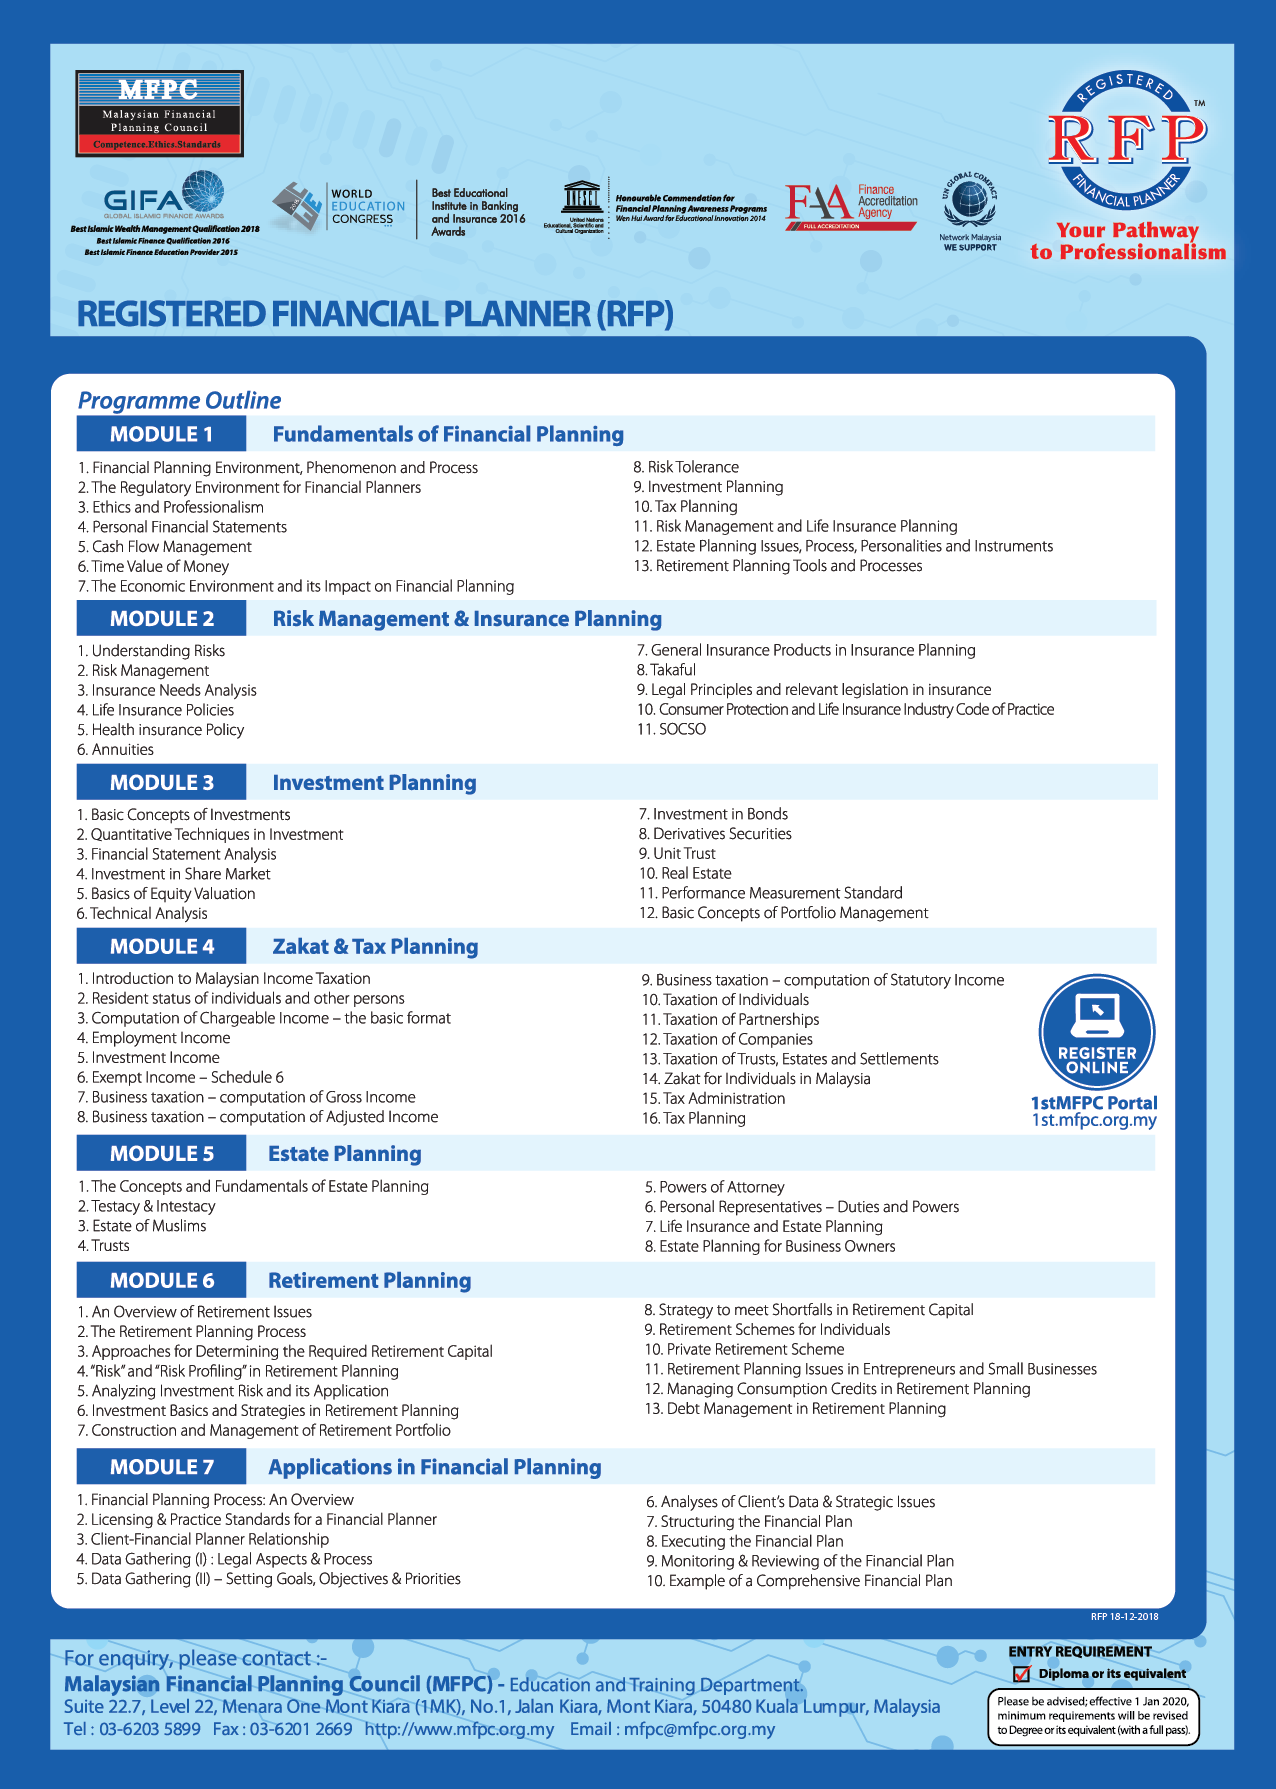 Registered Financial Planner (RFP) - Malaysian Financial